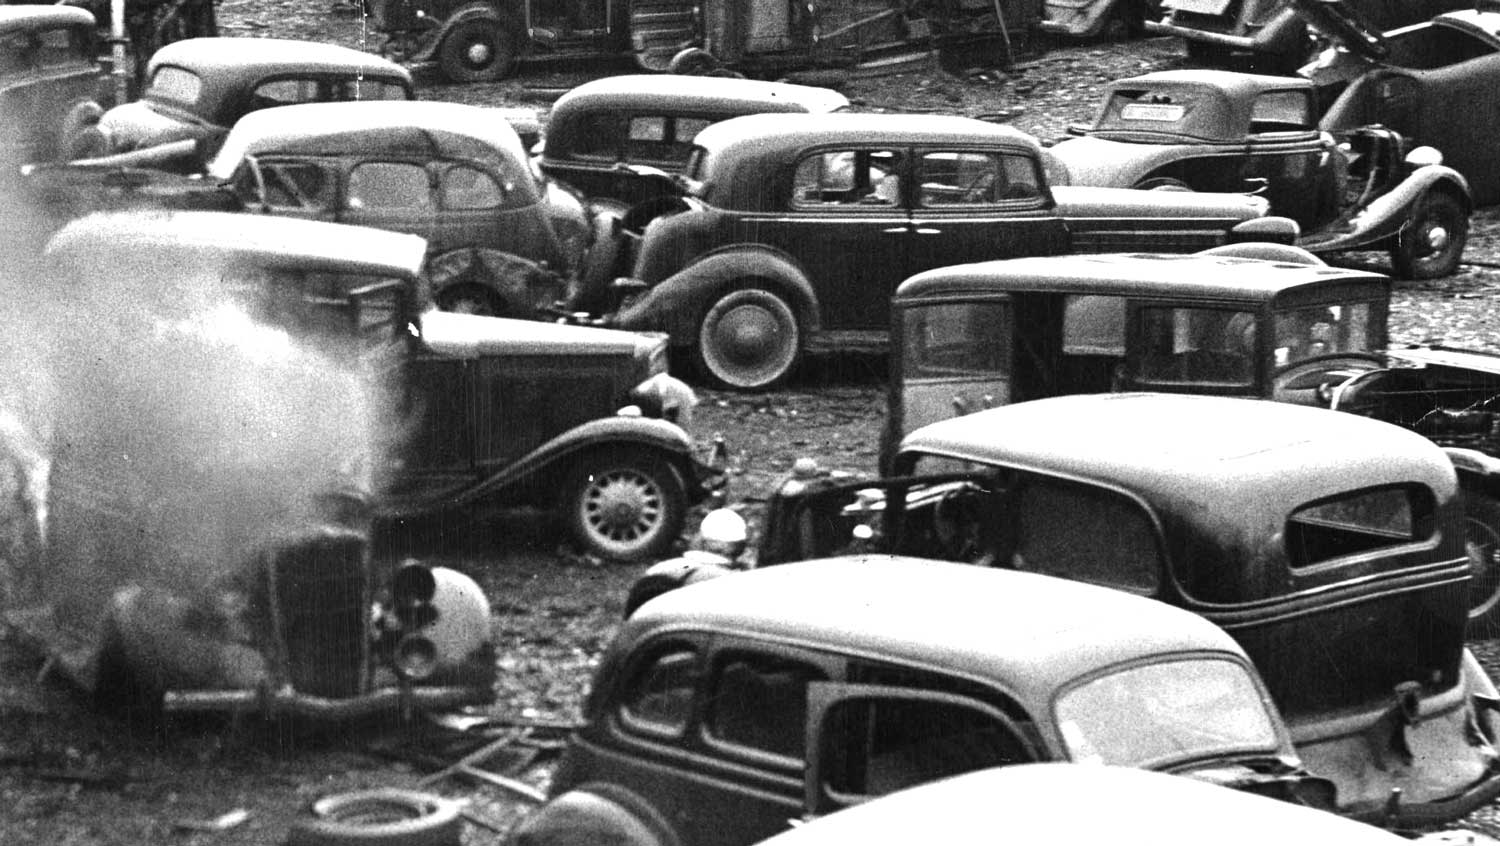 Philly Junk Yard: 1930s Cars Scraped and Crushed Into Bales | The ...